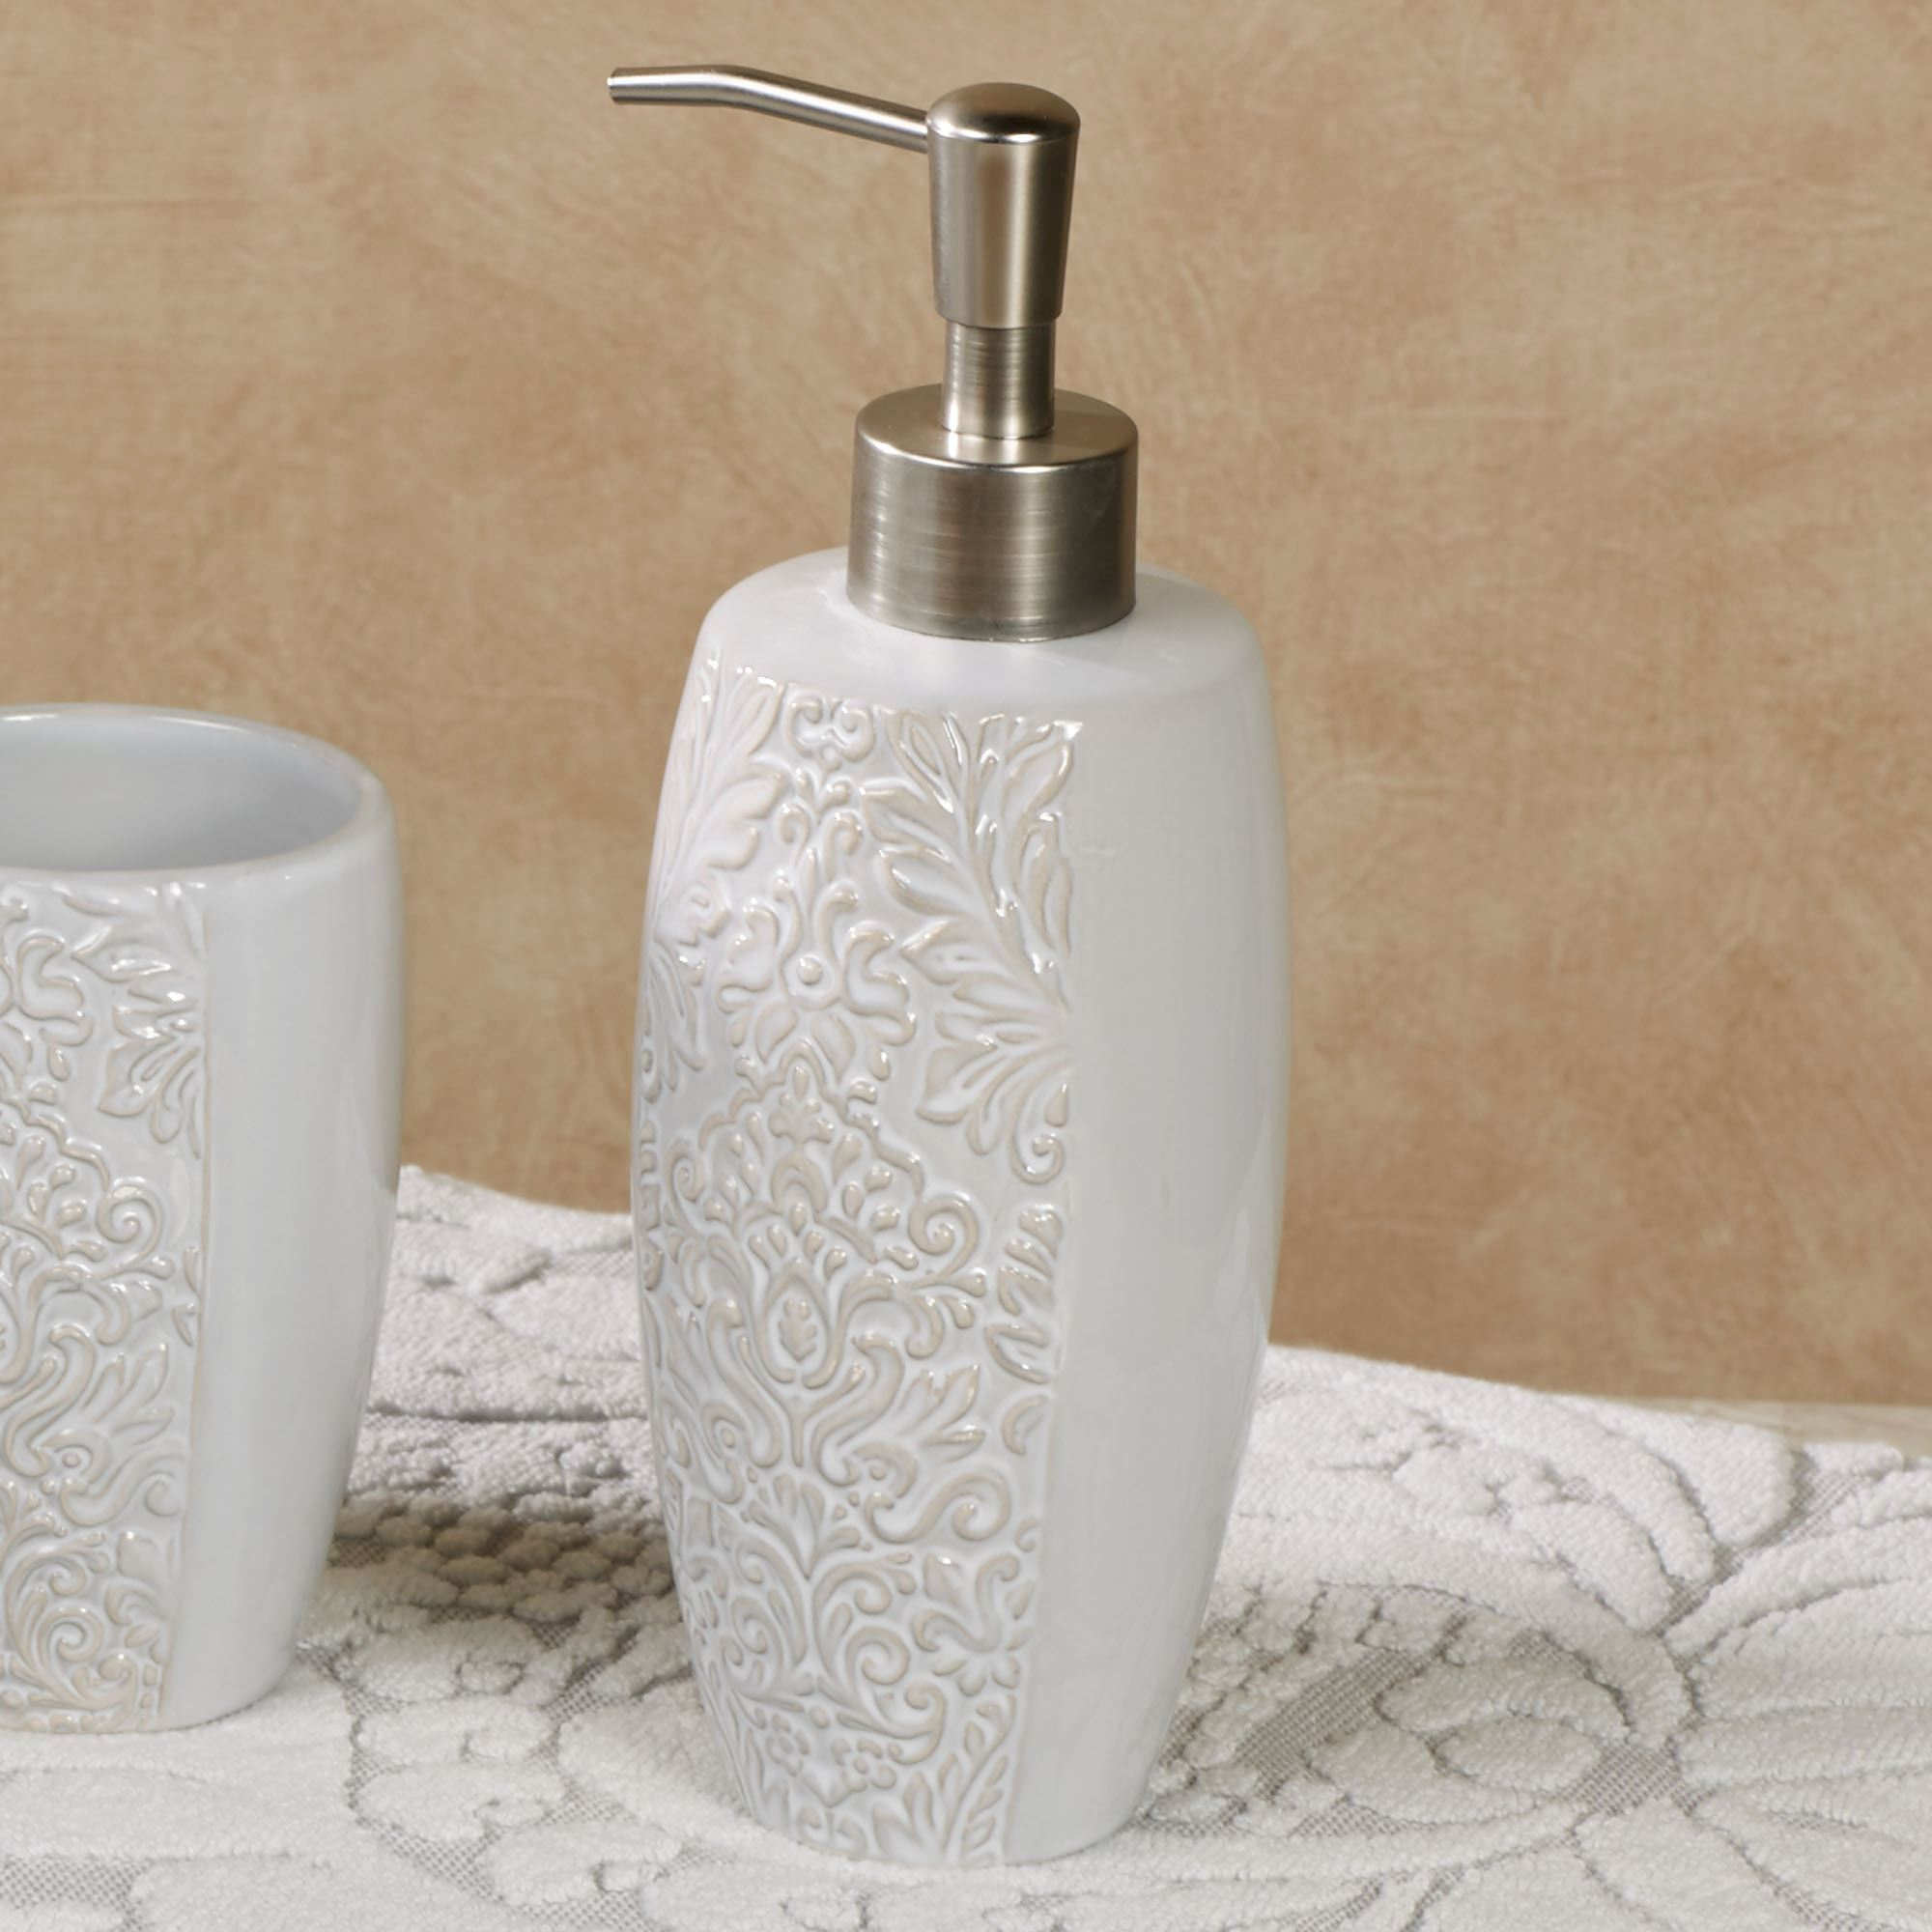 Heirloom Ceramic Bath Accessories